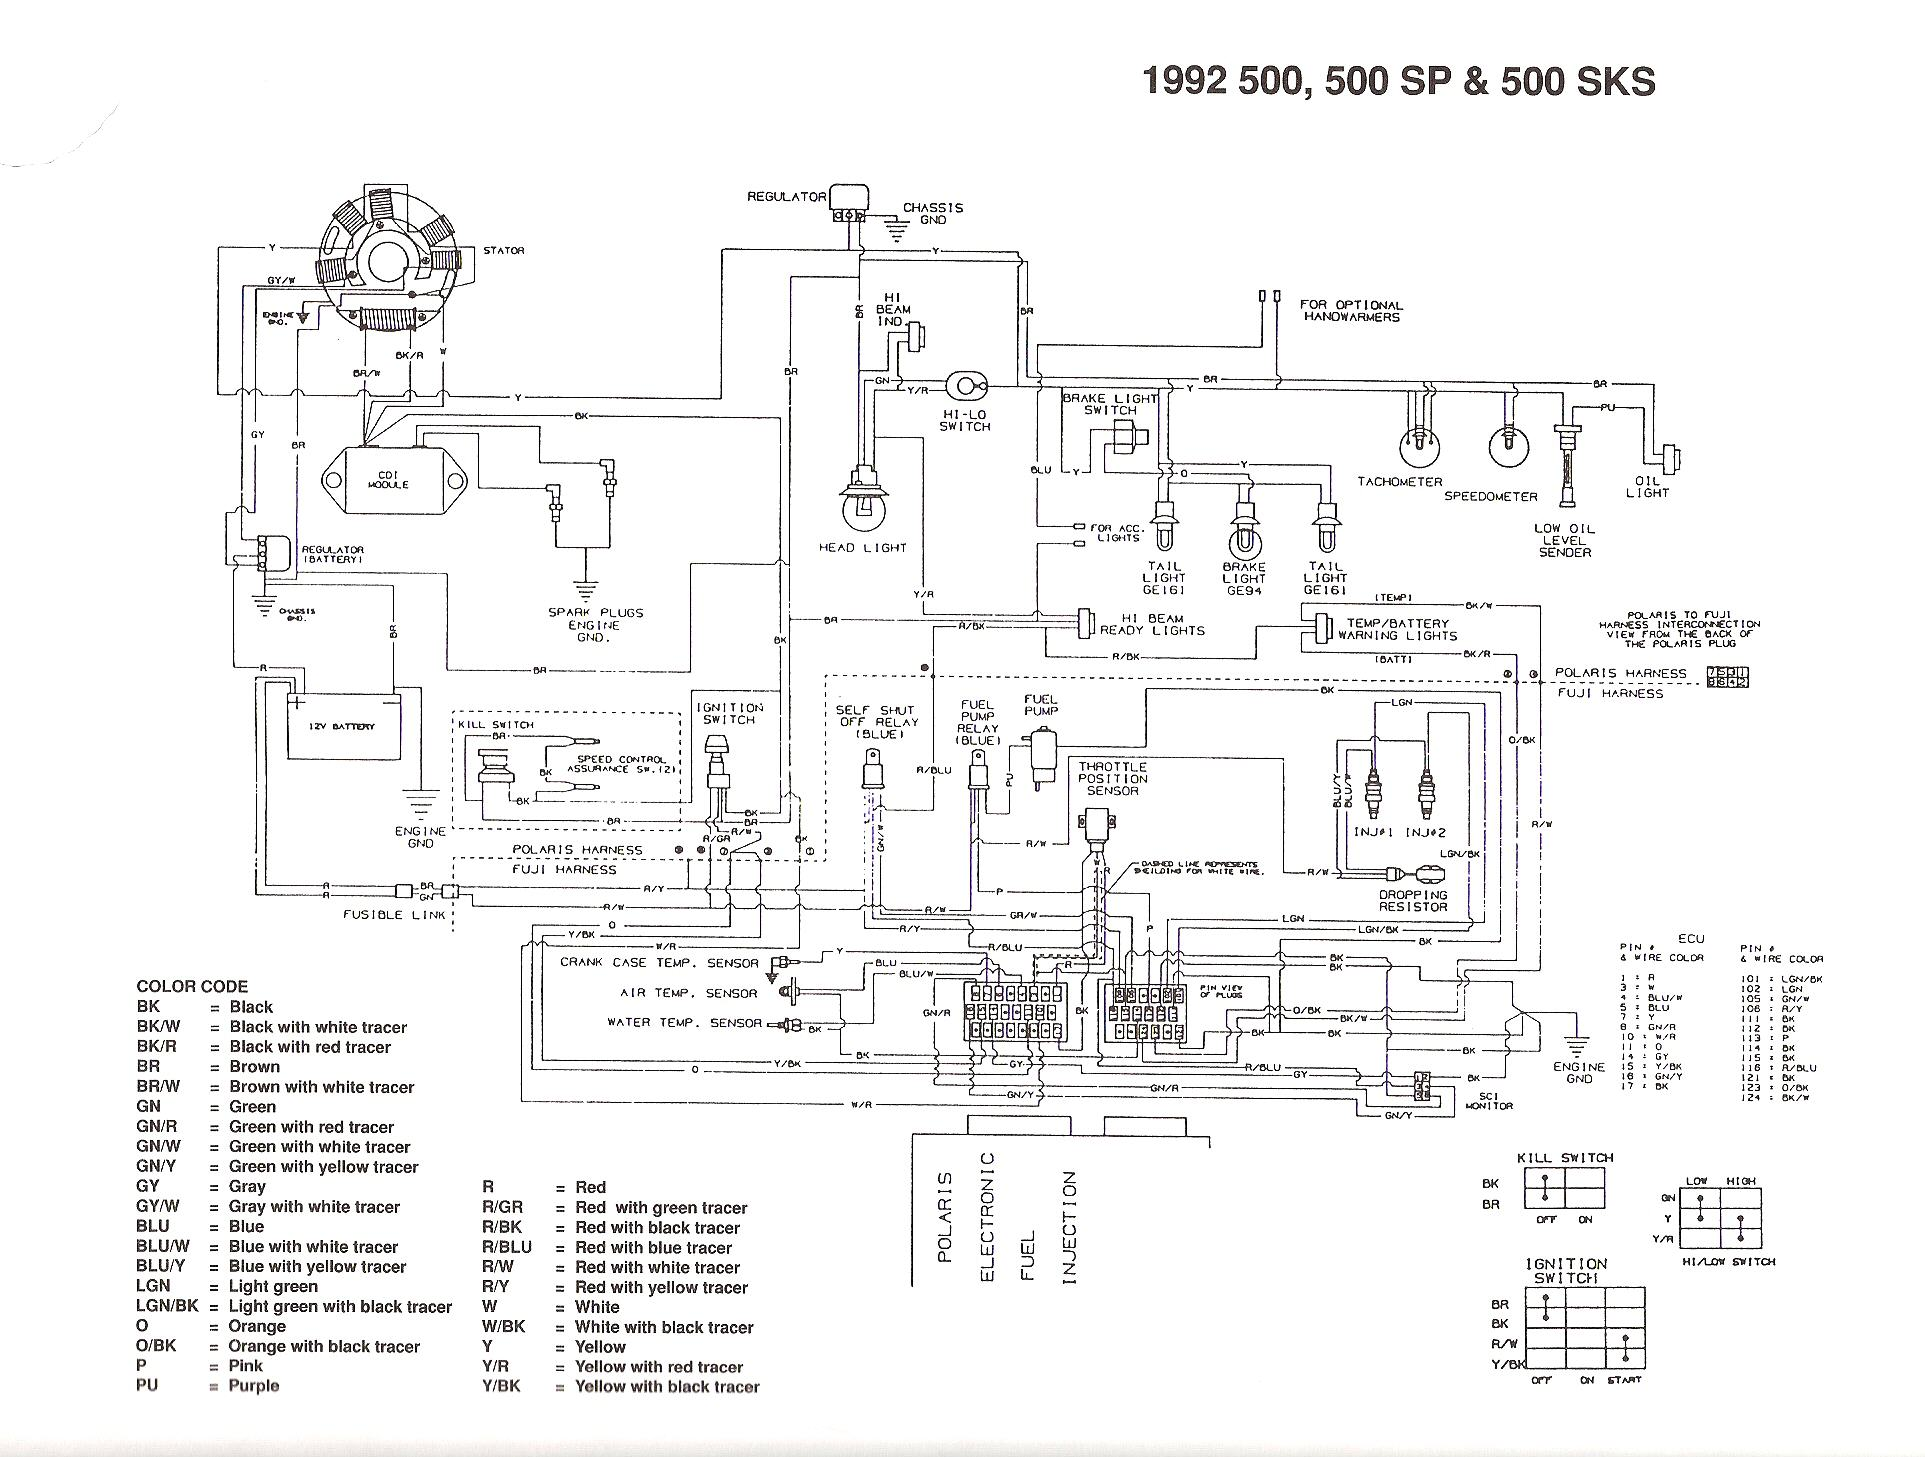 1999 polaris snowmobile engine diagram diagrams get image 1999 polaris snowmobile engine diagram diagrams get image about wiring diagram